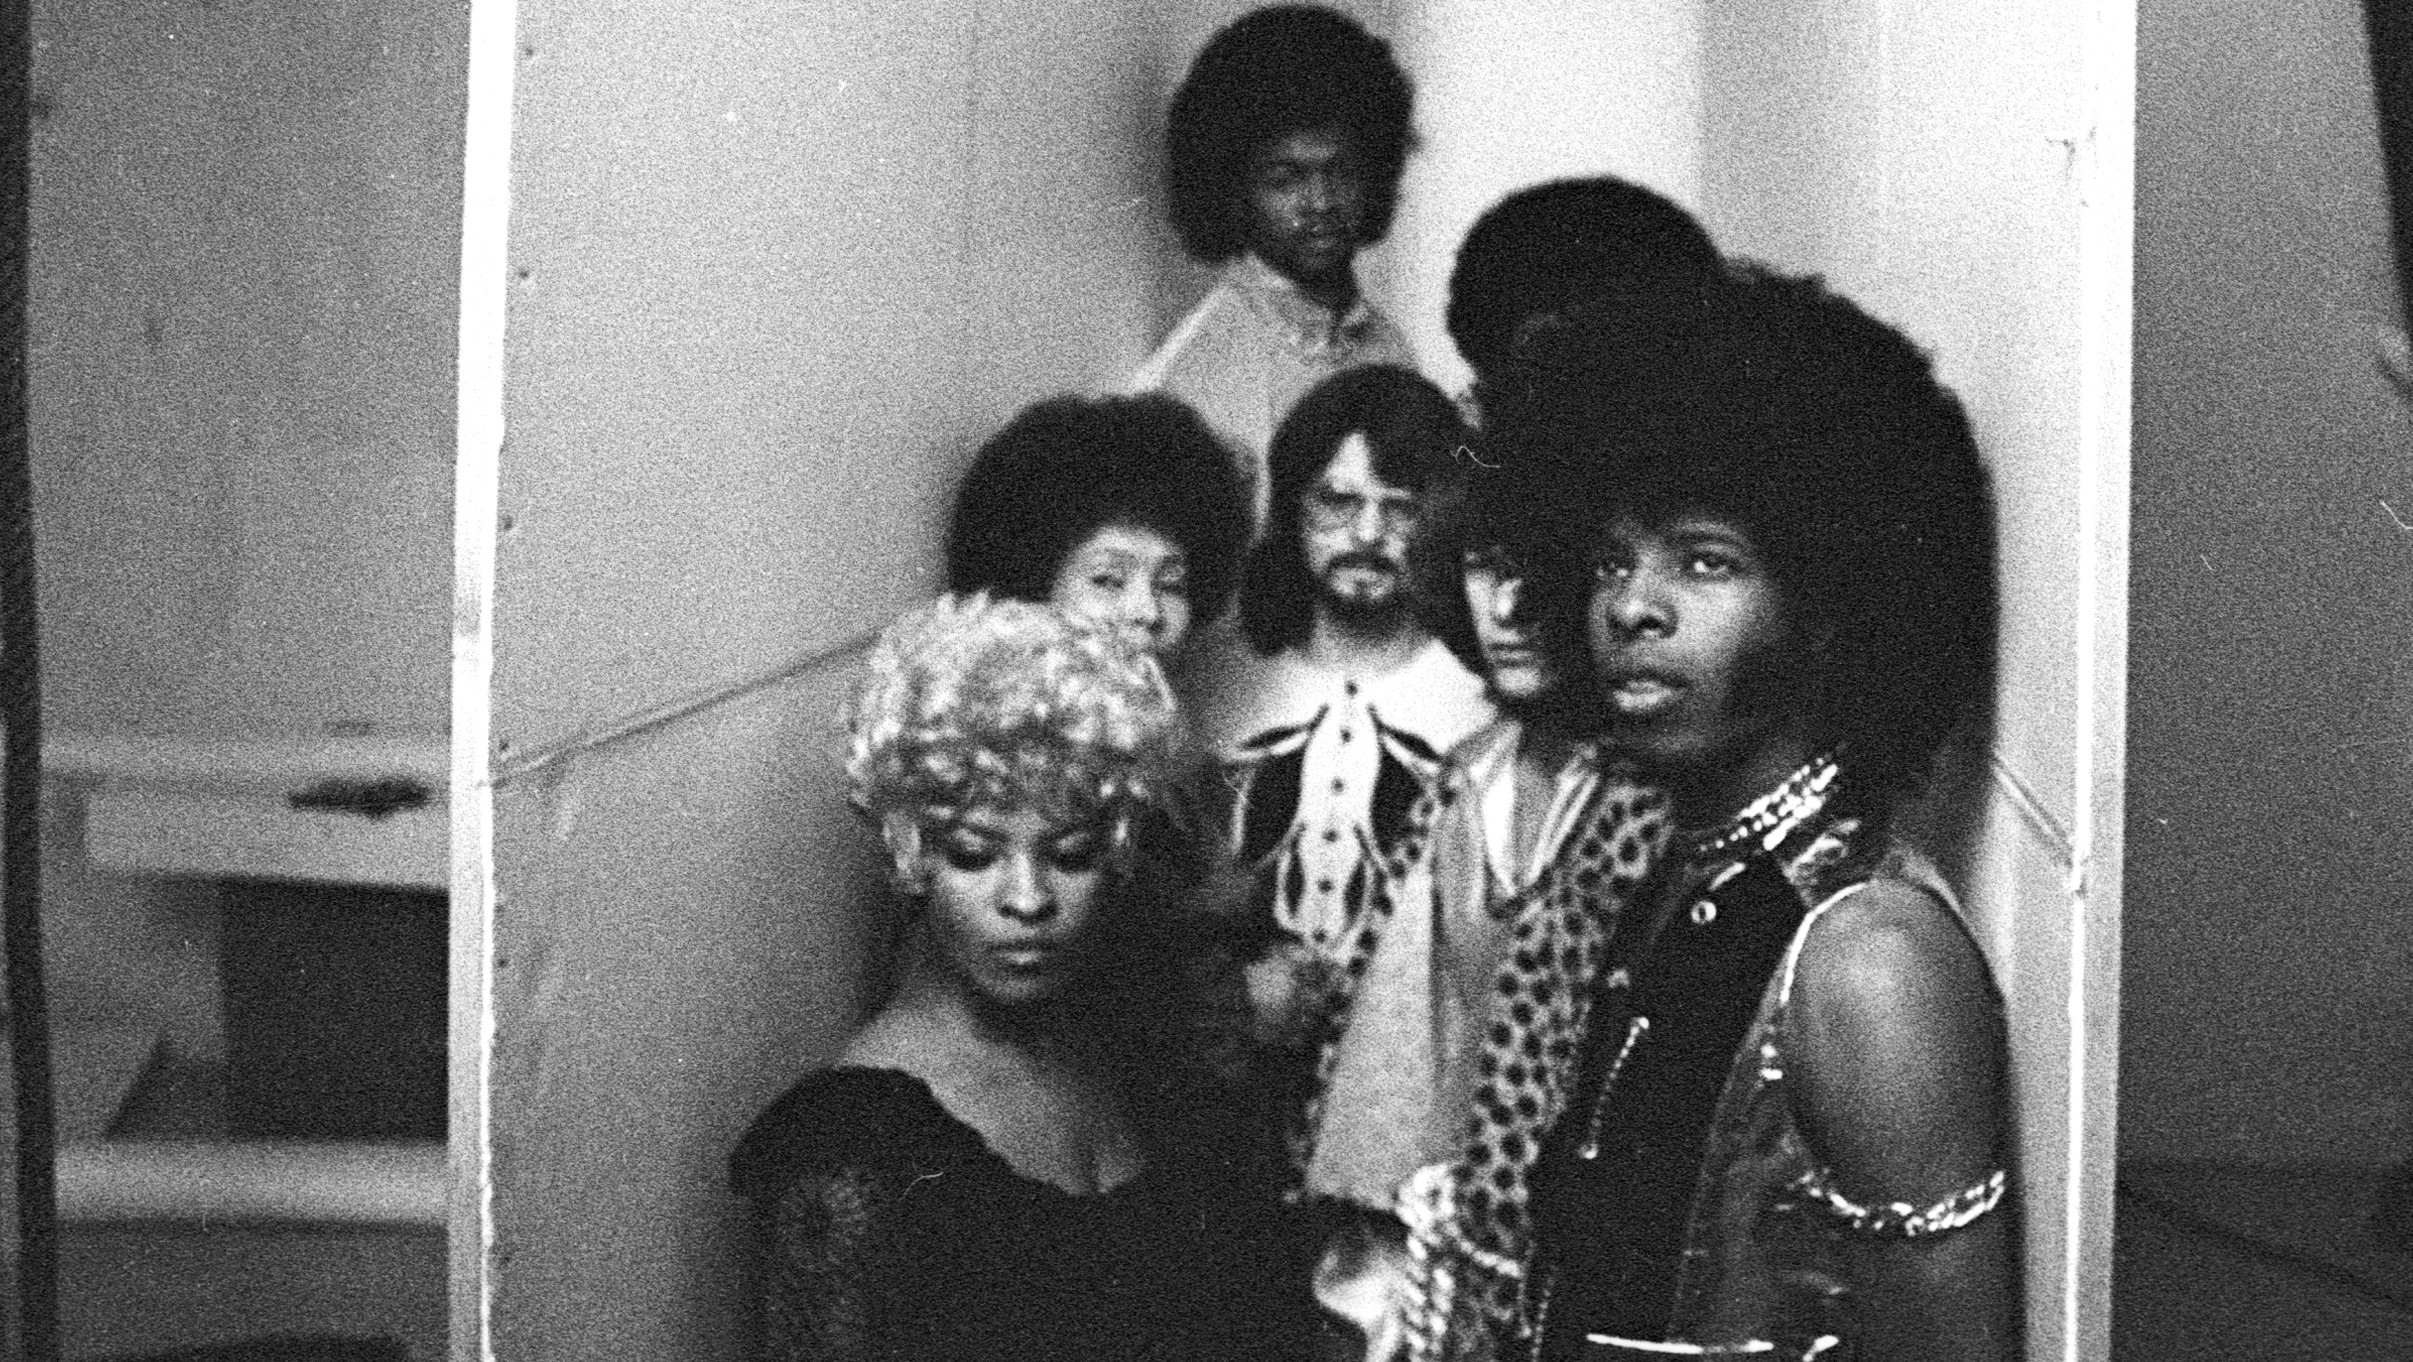 UNSPECIFIED - MARCH 26:  Photo of Sly & Family Stone  (Photo by Michael Ochs Archives/Getty Images)